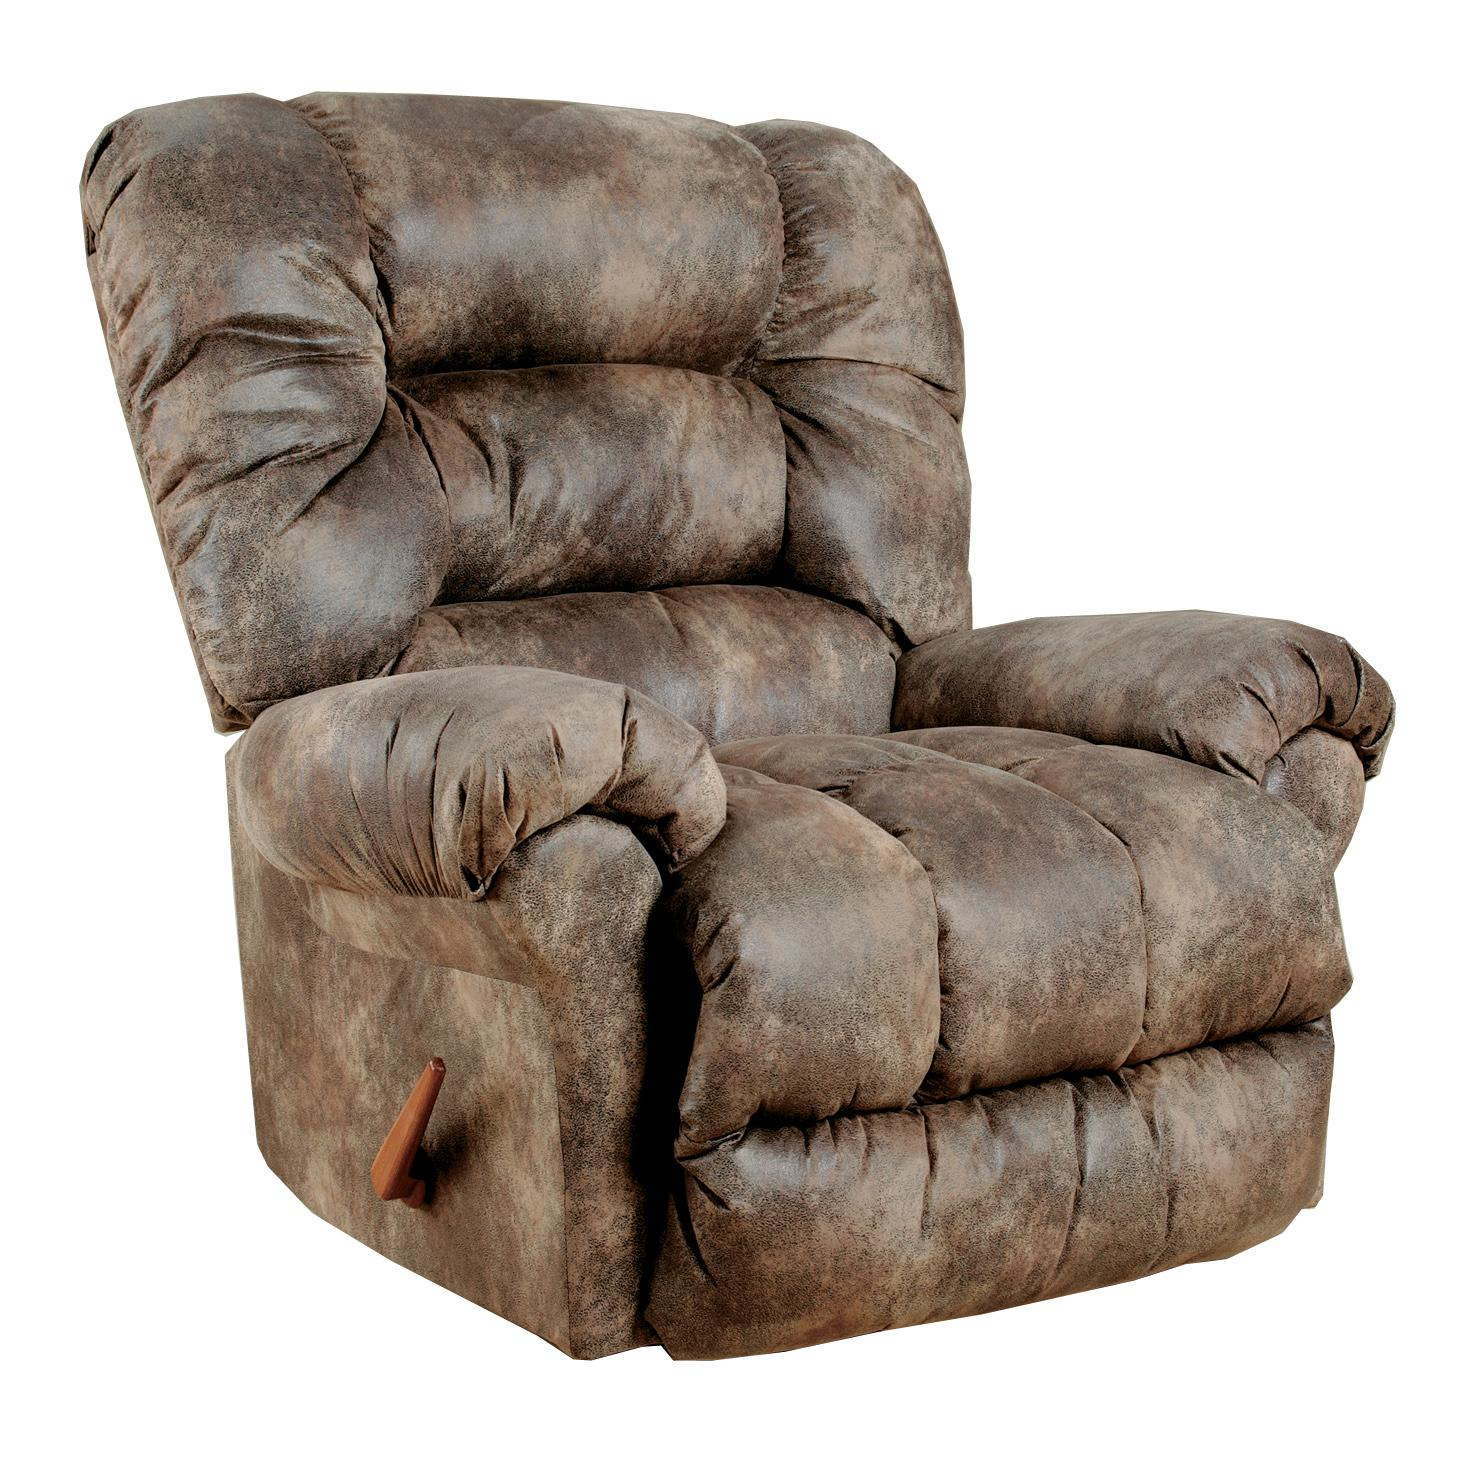 Seger Swivel Rocking Reclining Chair by Best Home Furnishings